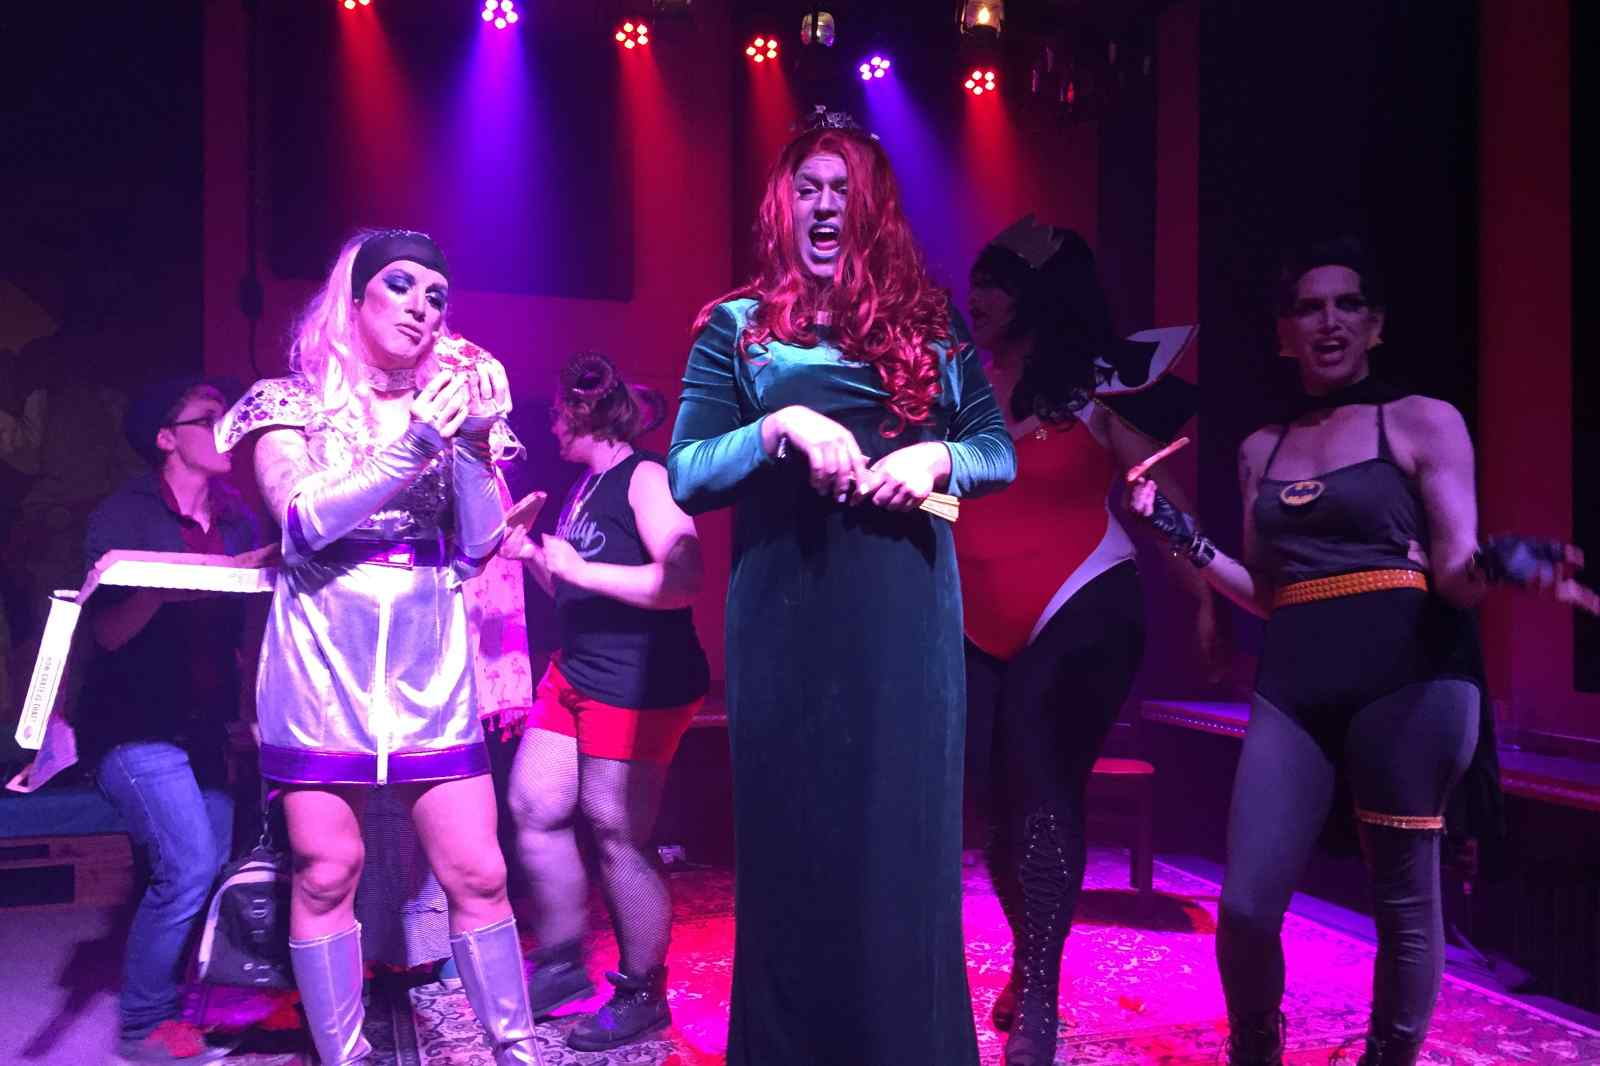 drag show ithaca lgbt lgbtq lgbtqa rupaul rupauls race queen king gay queer downtown commons the range